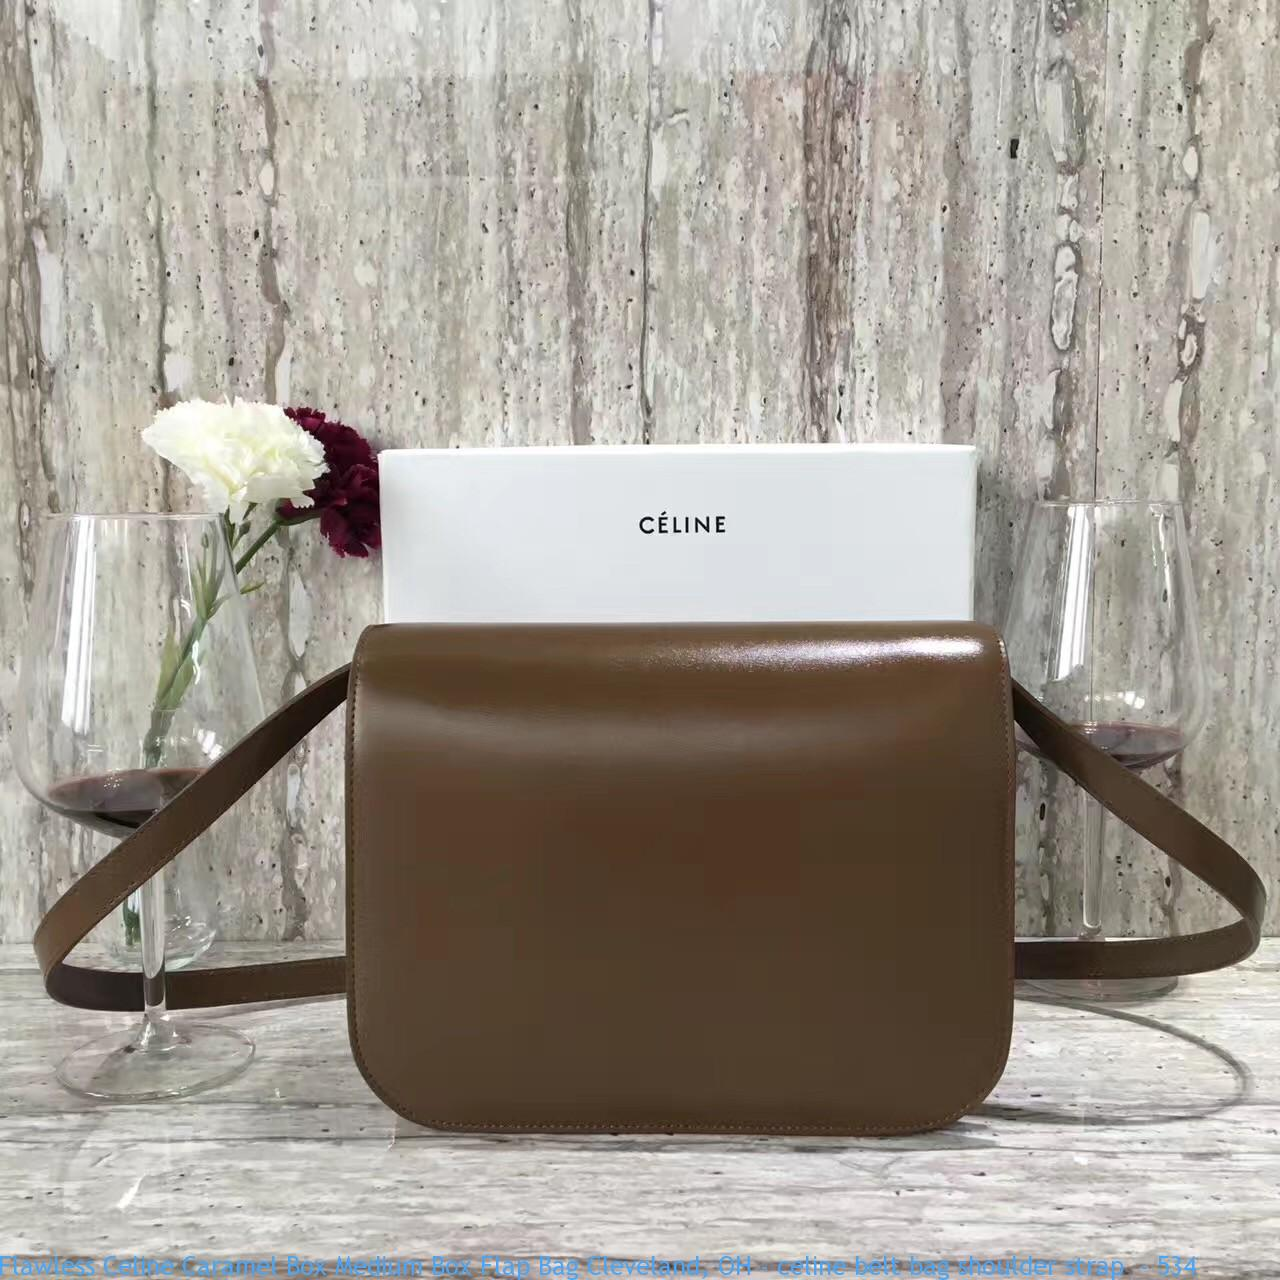 5495f442ded5 Flawless Celine Caramel Box Medium Box Flap Bag Cleveland